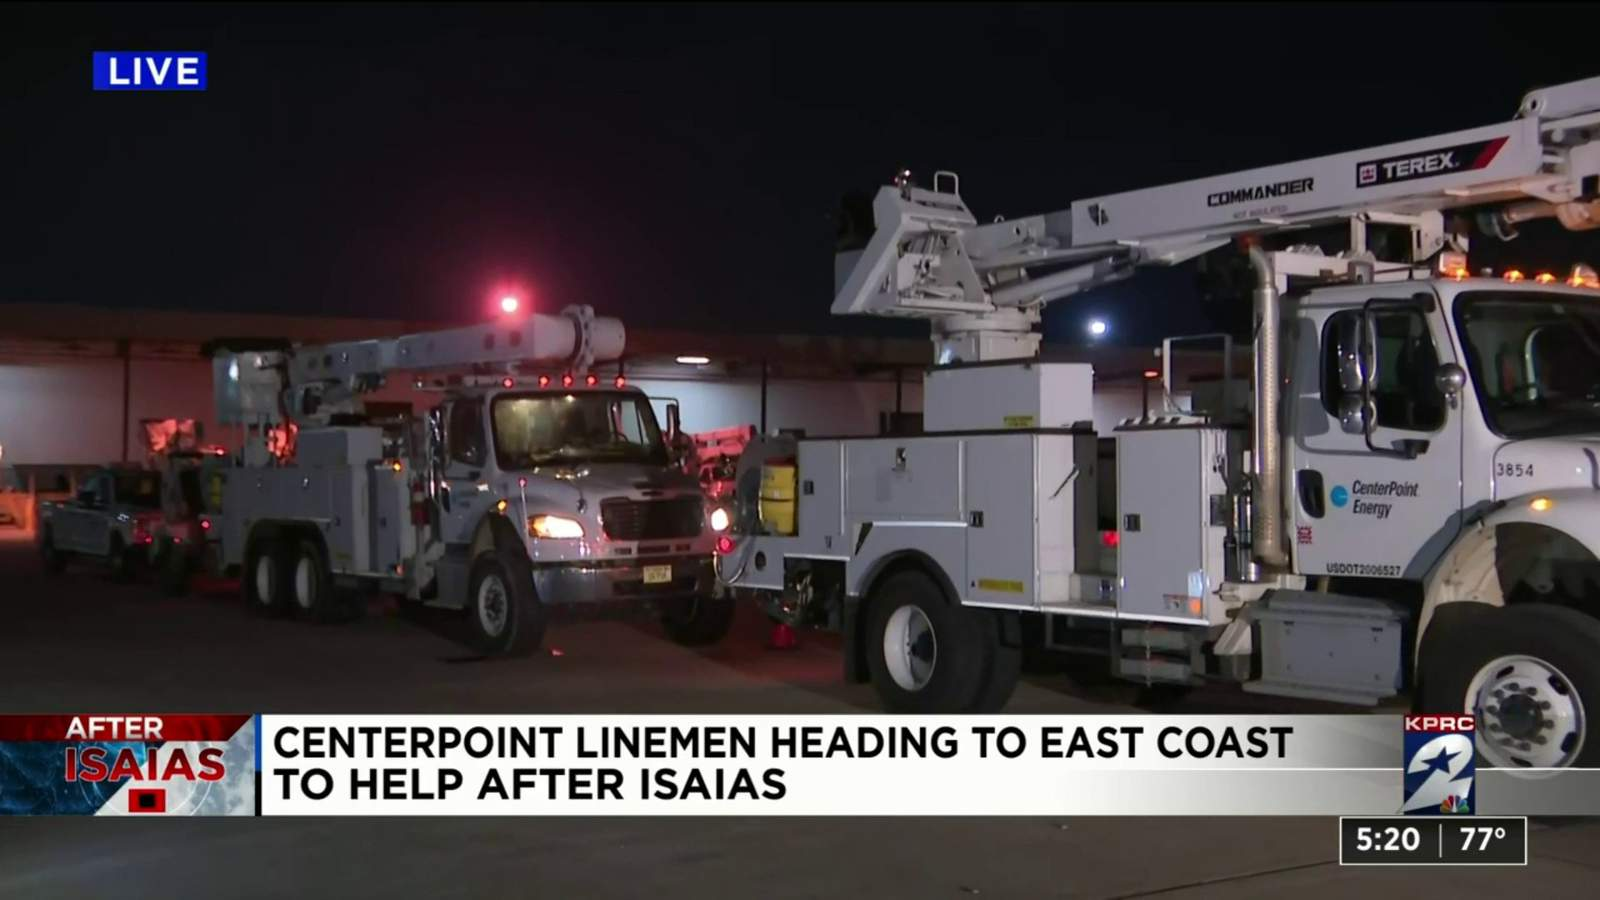 CenterPoint linemen heading to East Coast to help...